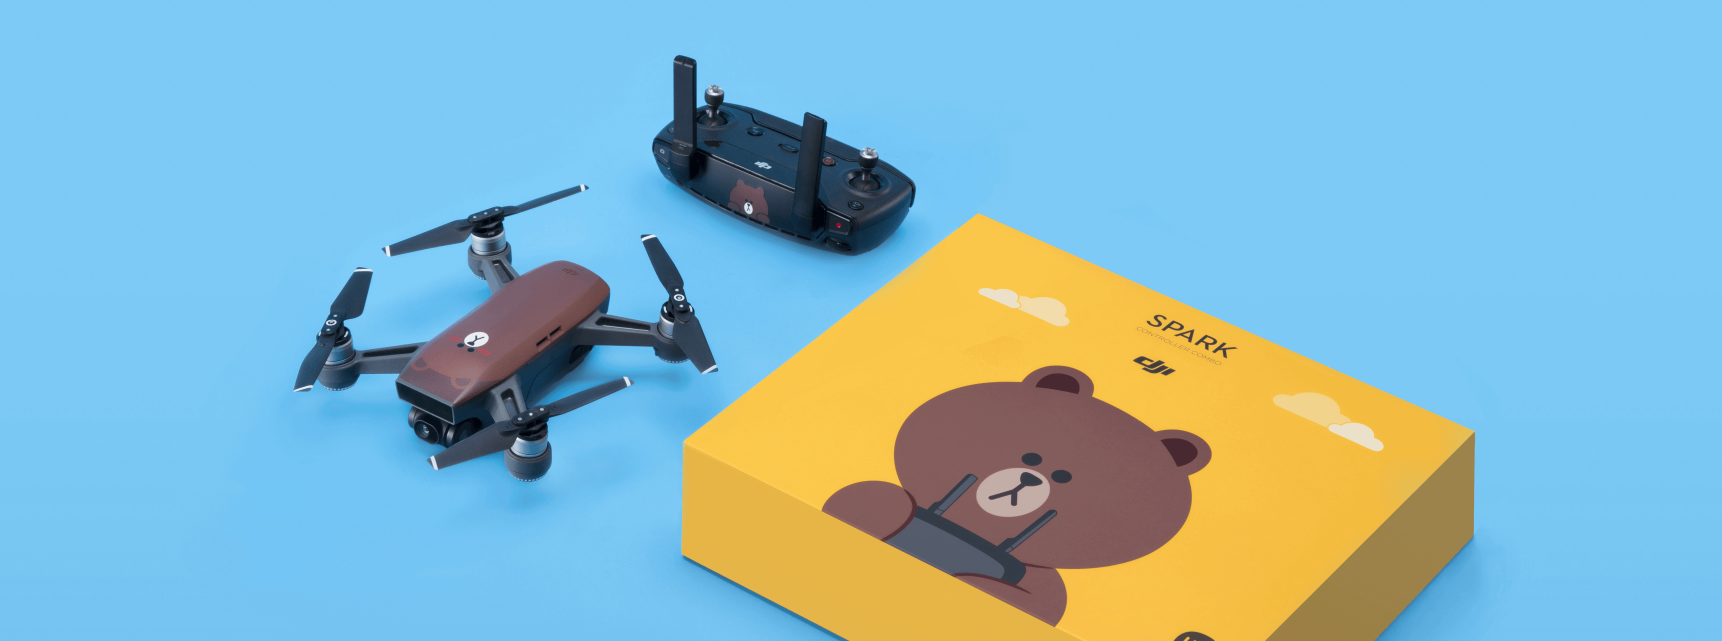 DJI Spark just got an adorable Line Friends drone makeover